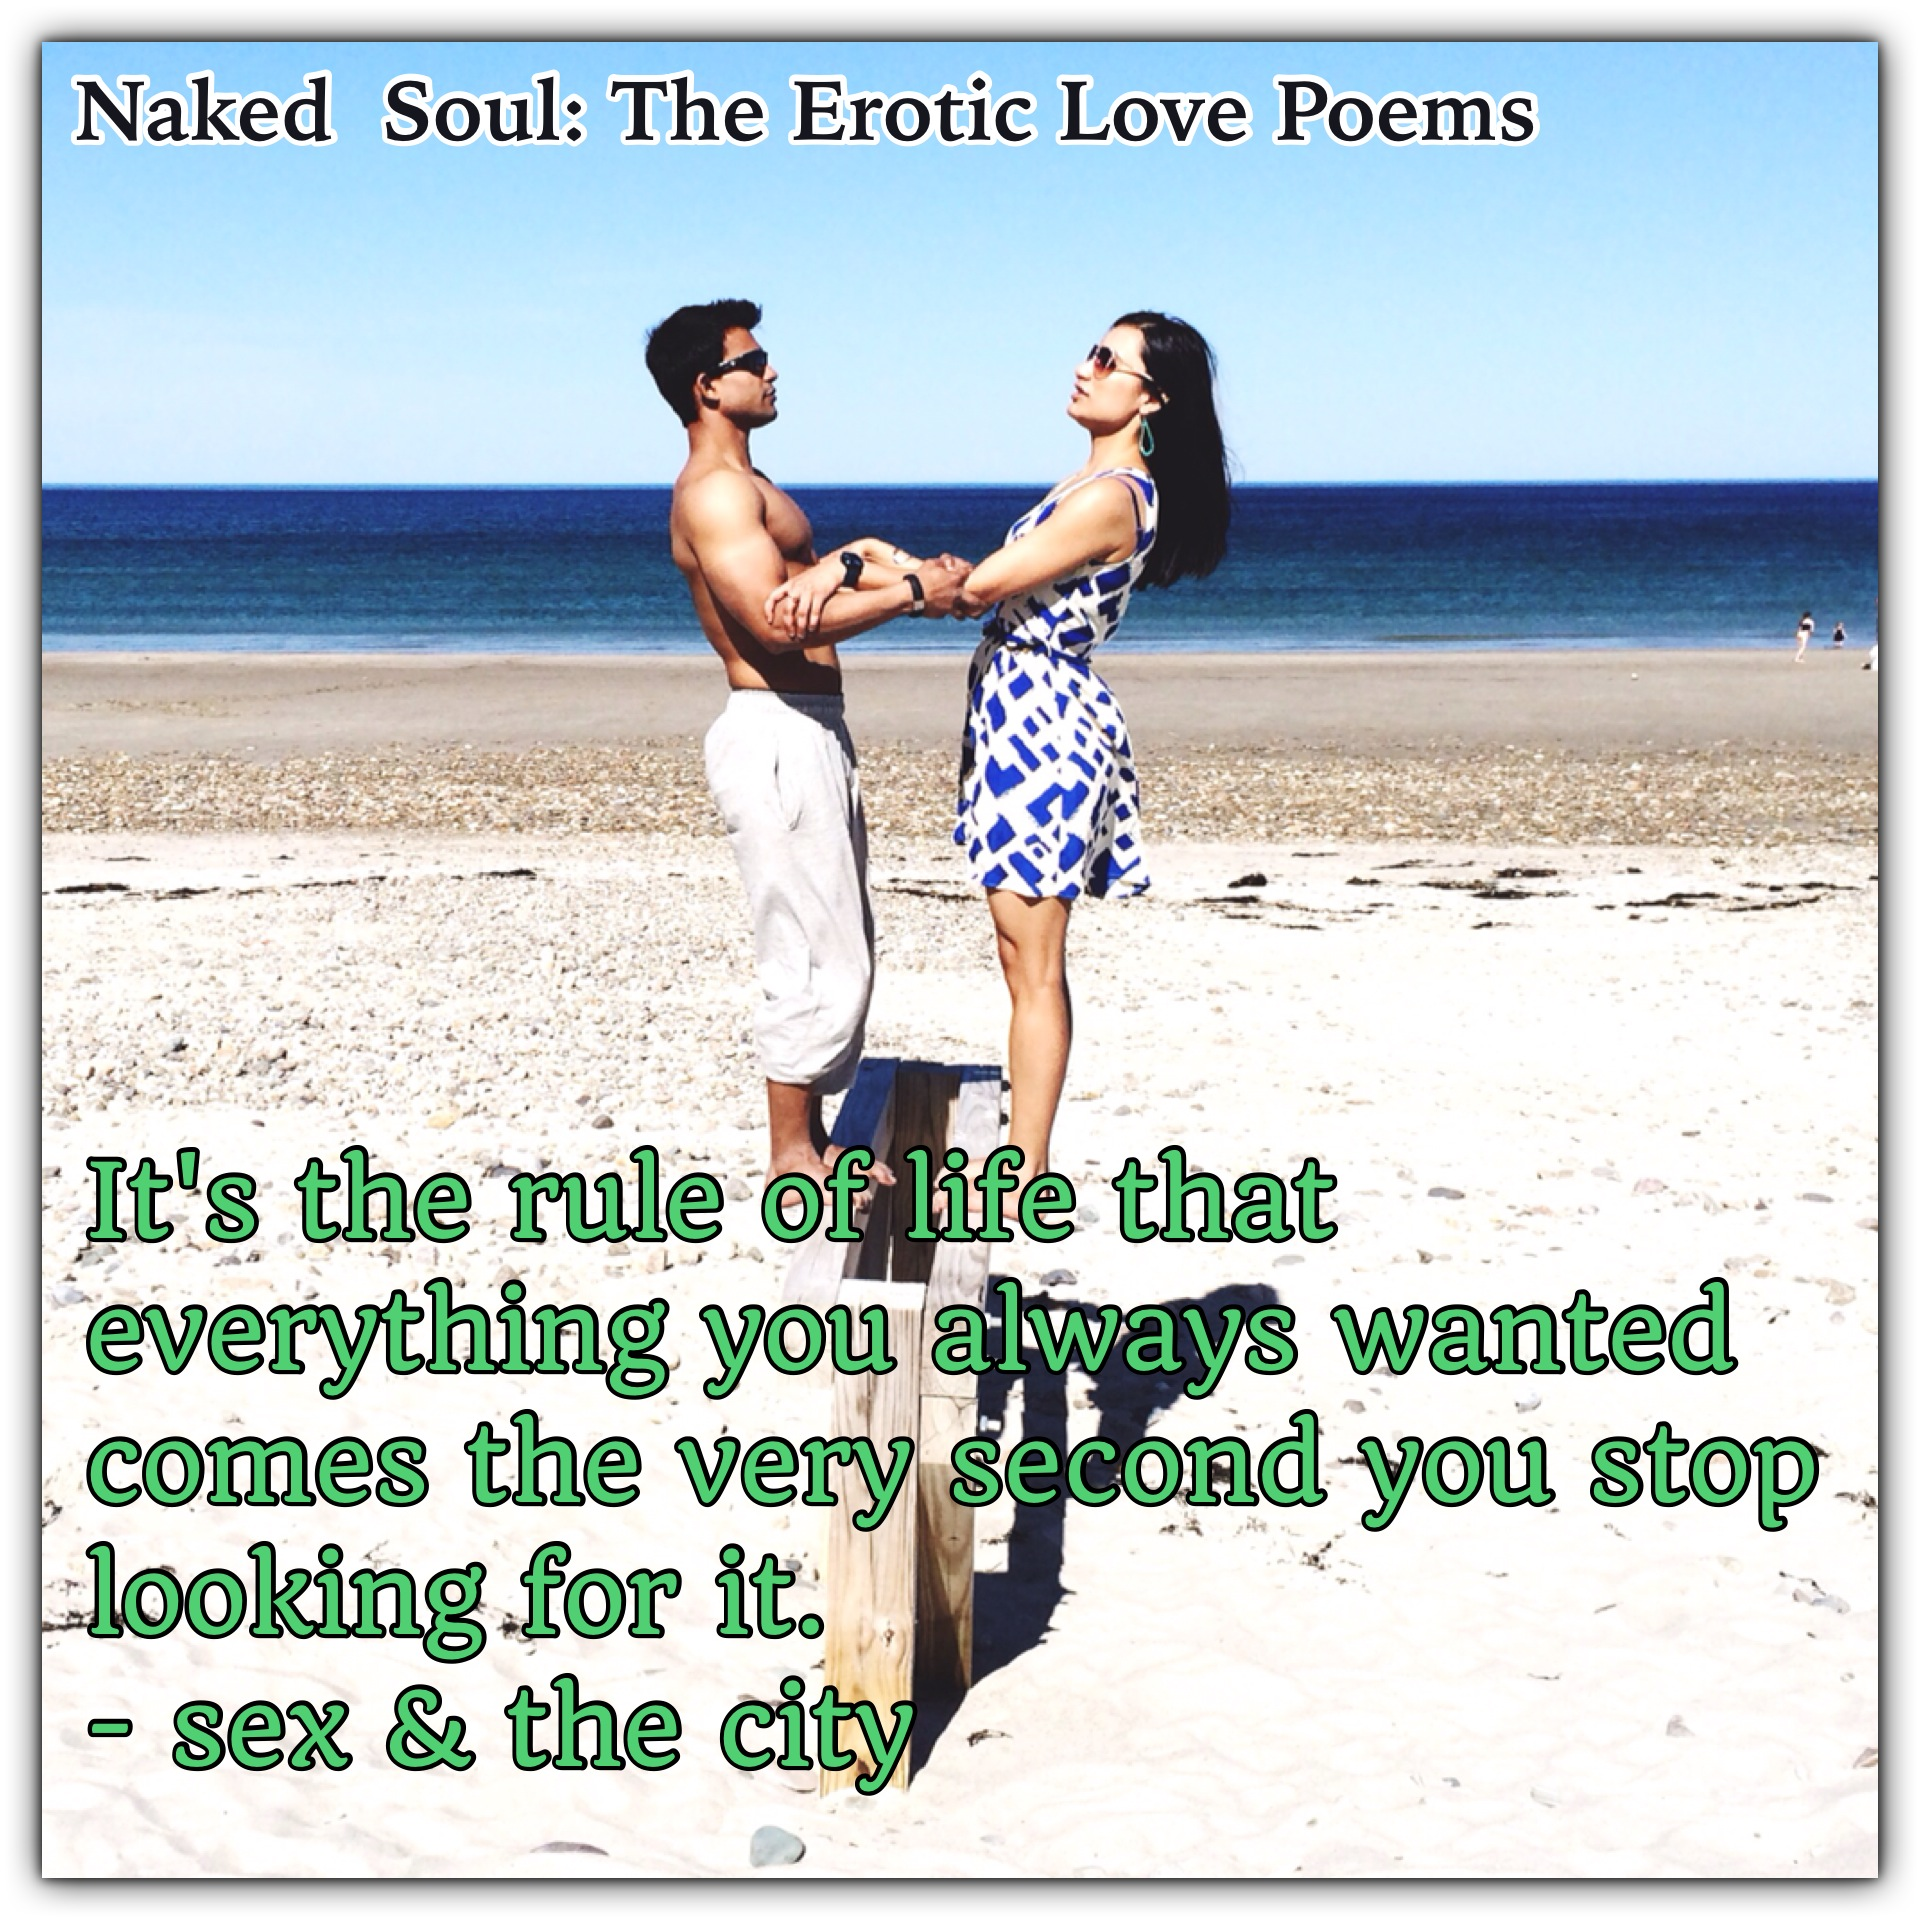 From the Naked Soul: The Erotic Love Poems